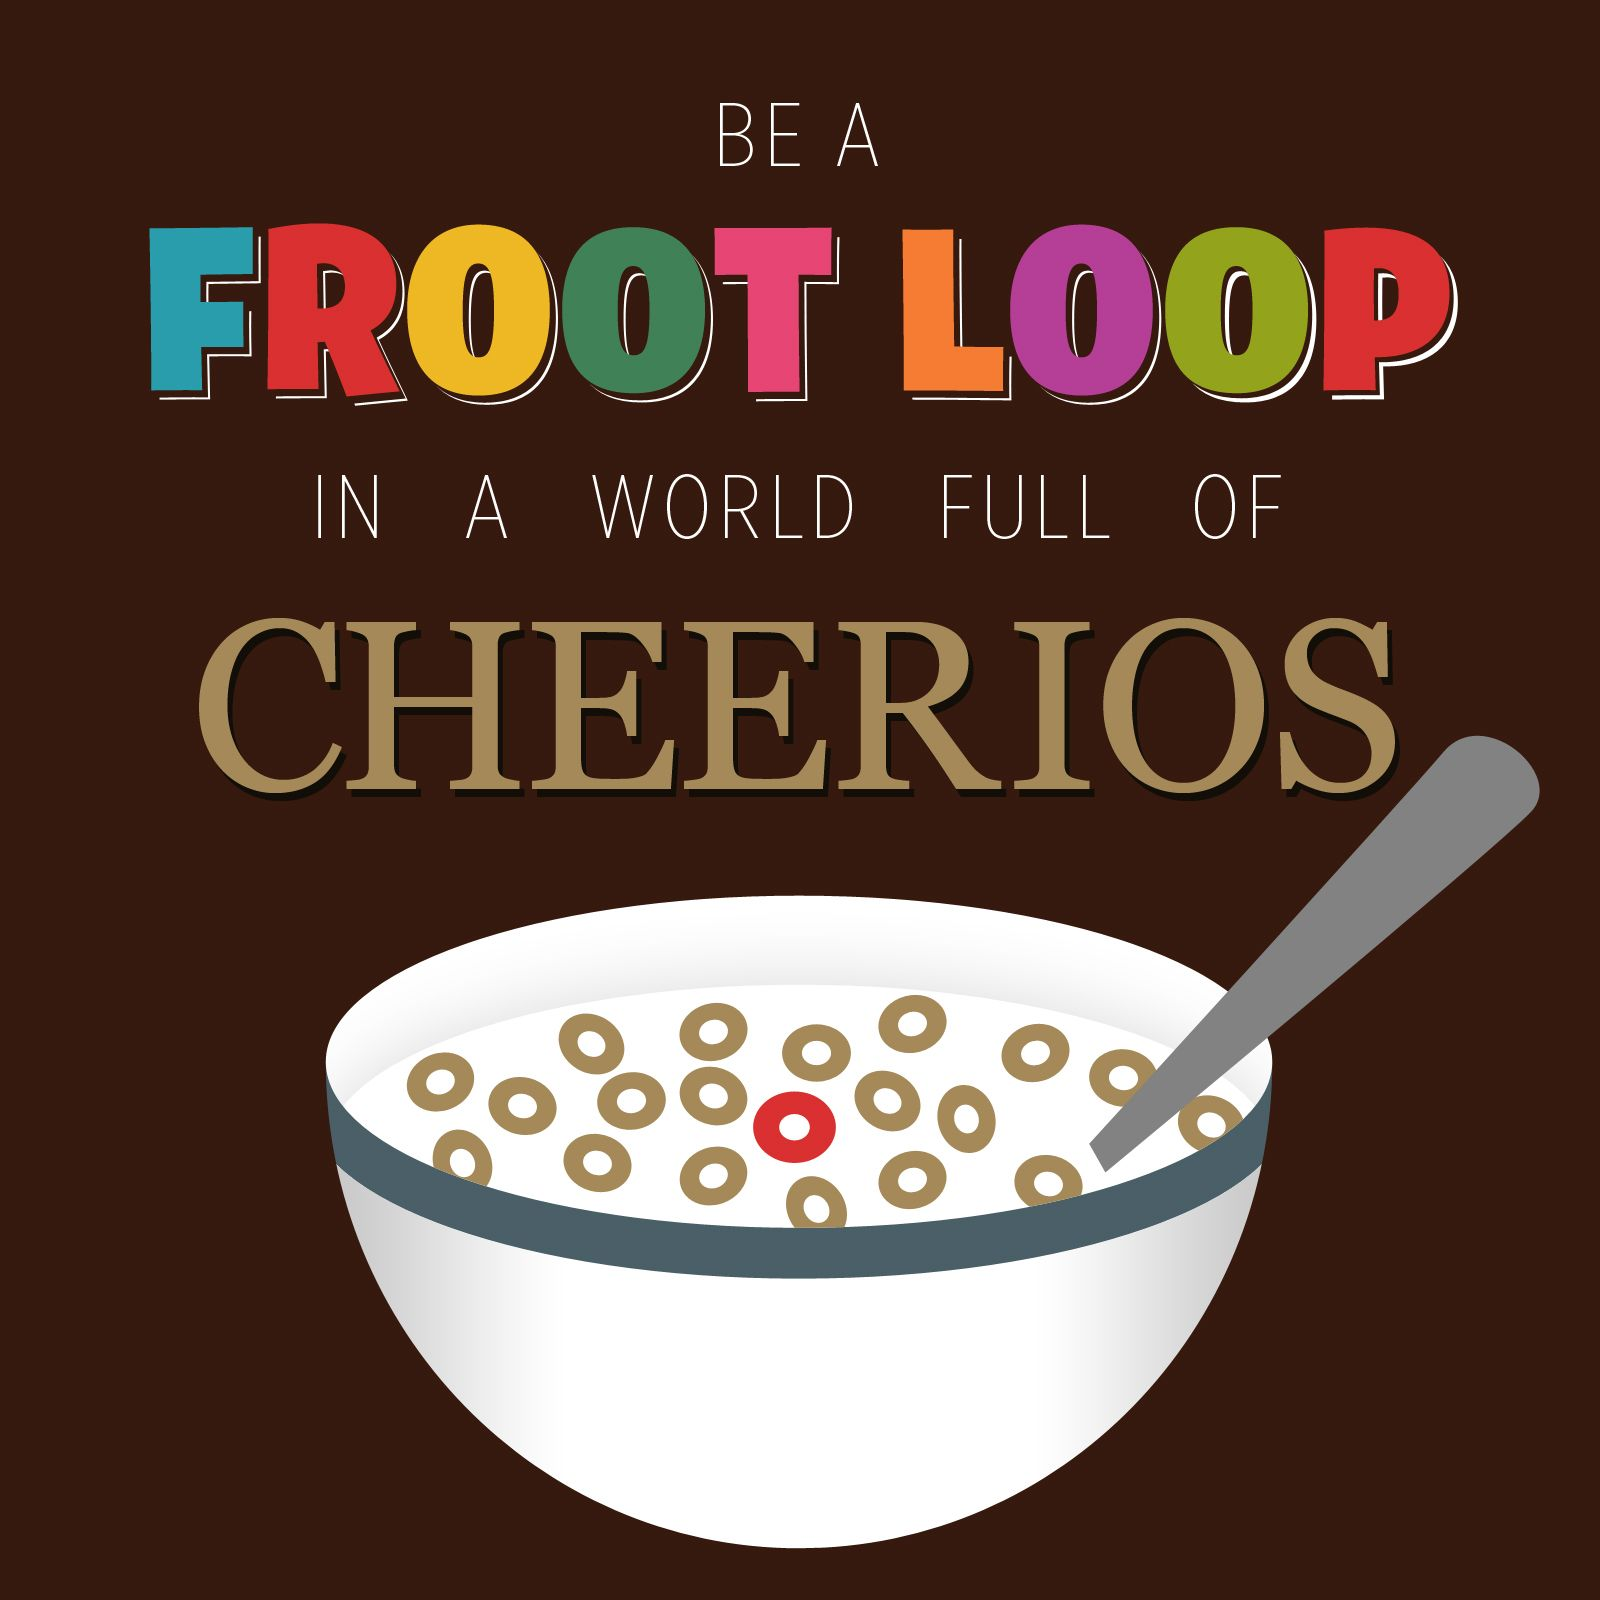 Be A Fruitloop In A World Full Of Cheerios Quote: Be A Froot Loop In A World Full Of Cheerios! By Todd